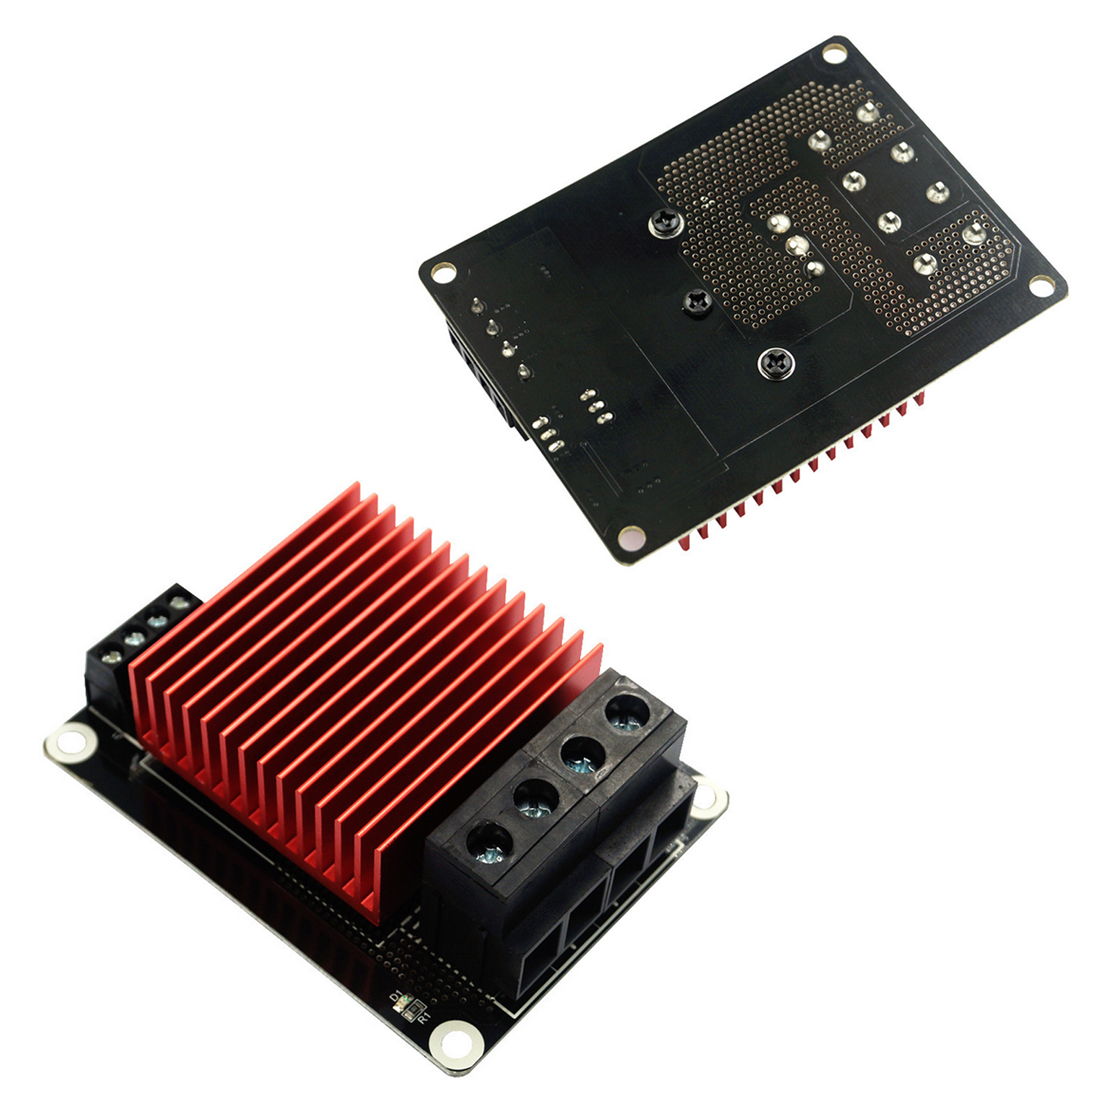 Etmakit Hot Sale 3D Printer Parts Heating-Controller mosfet for Heat Bed/Extruder MOS Module Exceed 30A Support Big Current